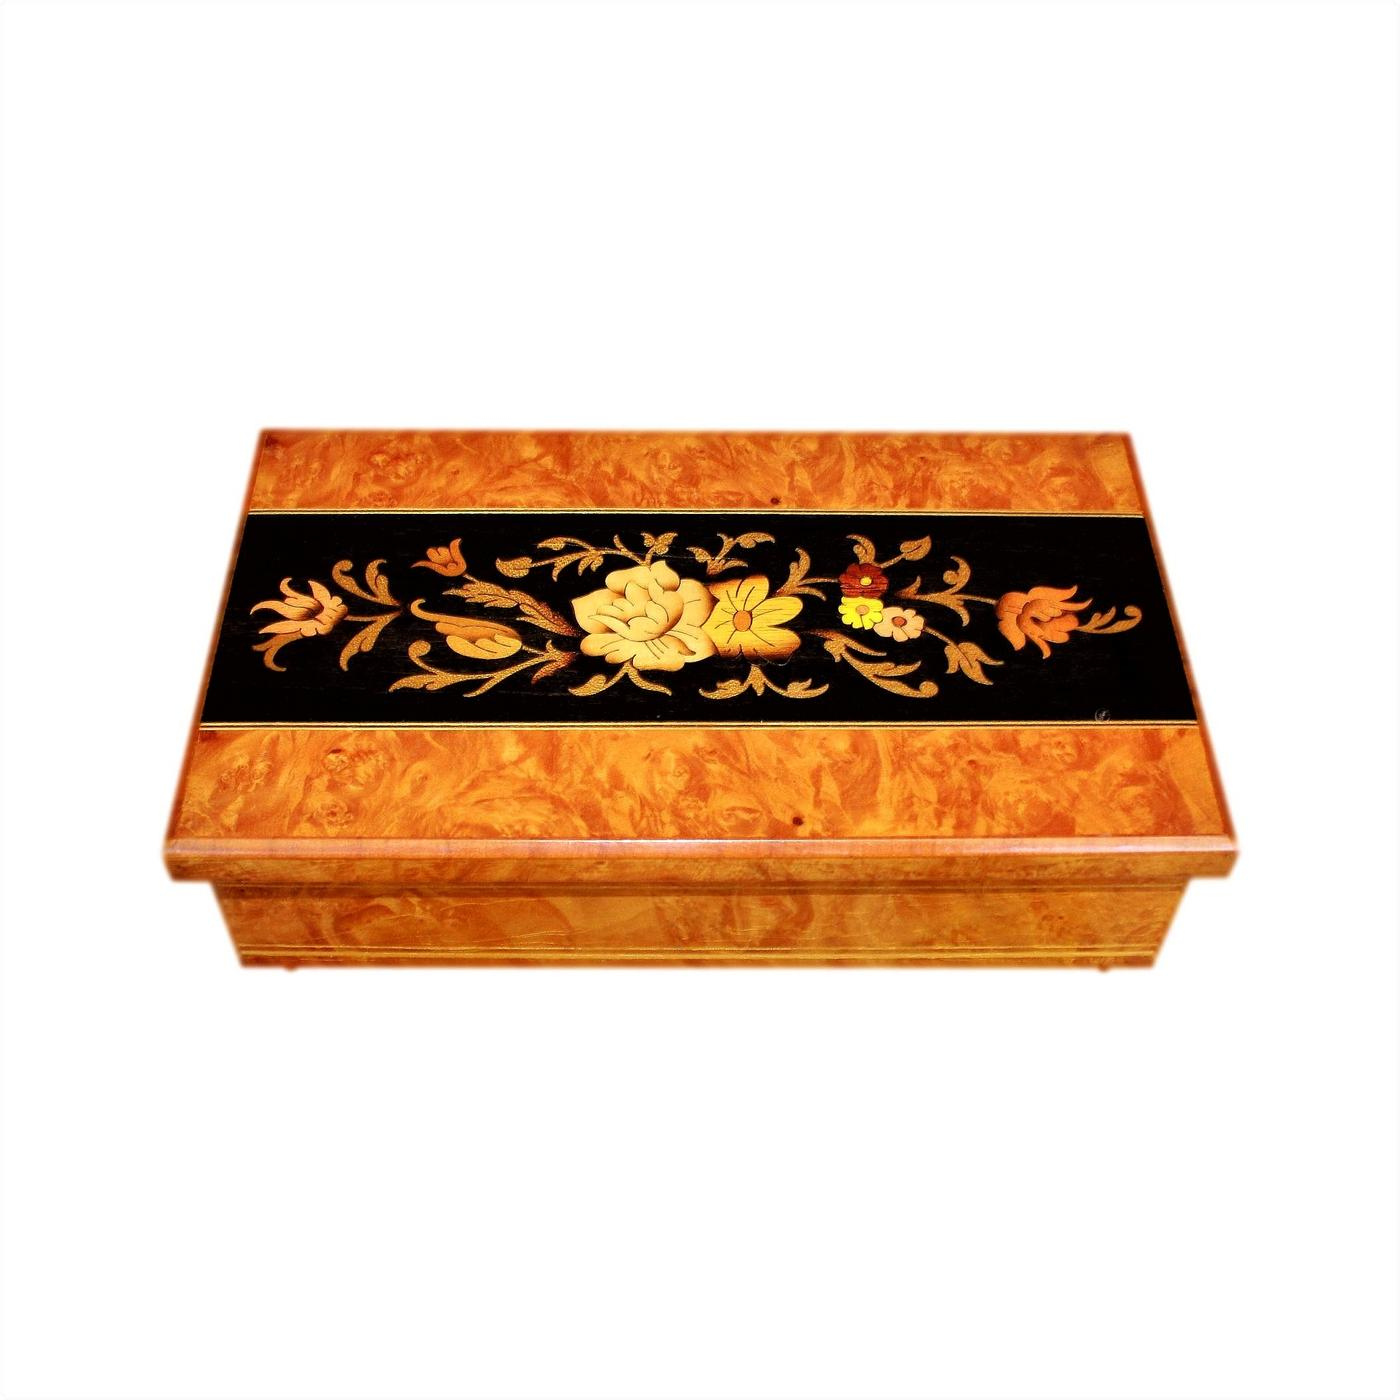 Beautiful Italian Musical Vintage Jewellery Box With Floral Inlay